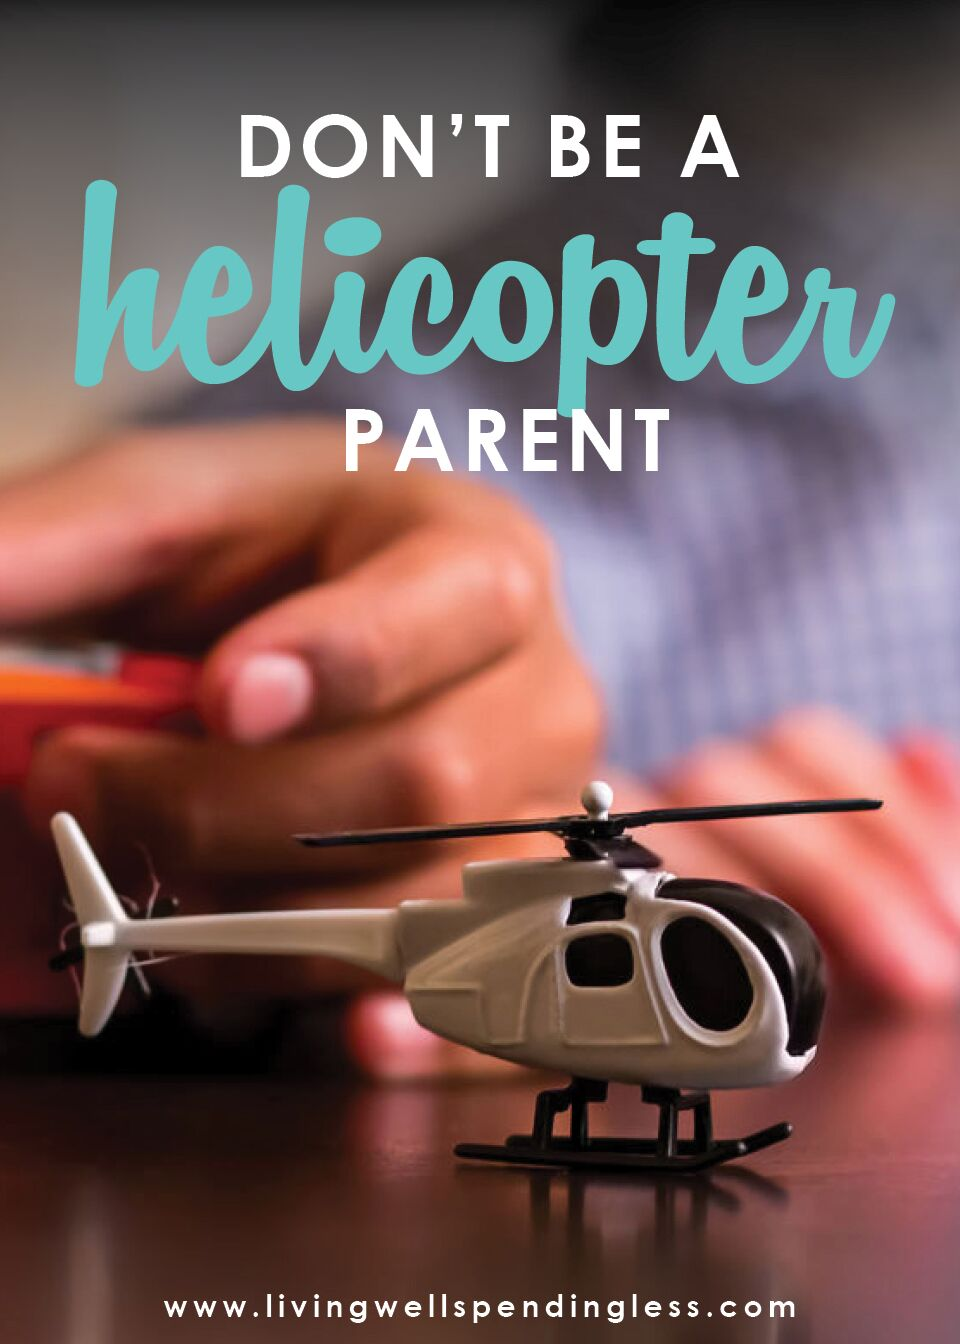 Don't be a helicopter parent.